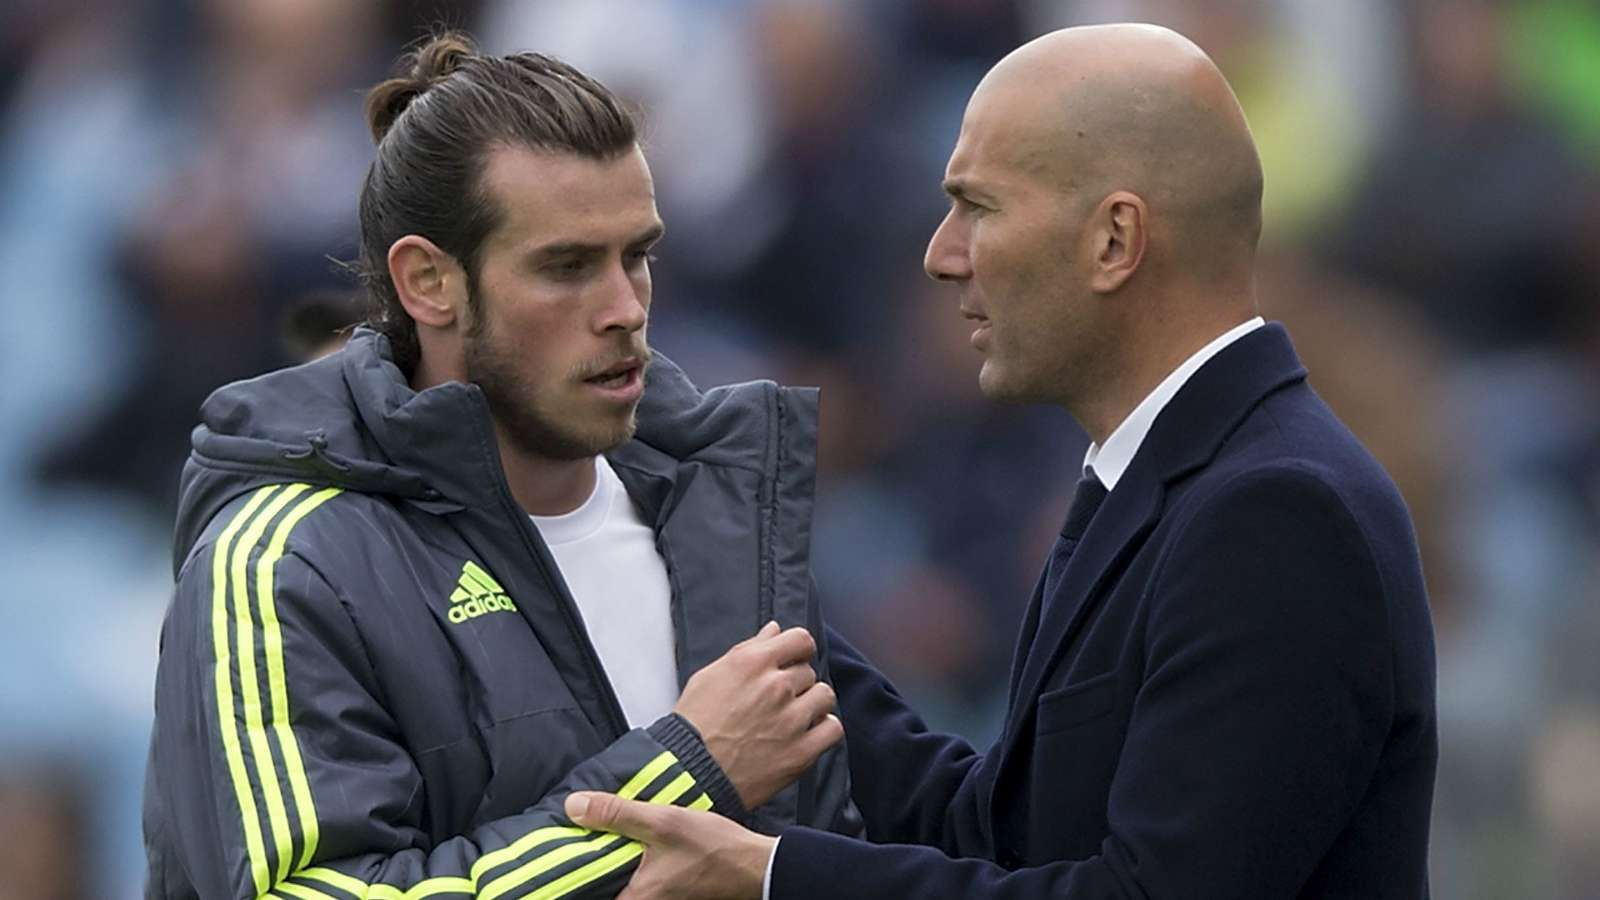 areth-bale-zinedine-zidane-real-madrid